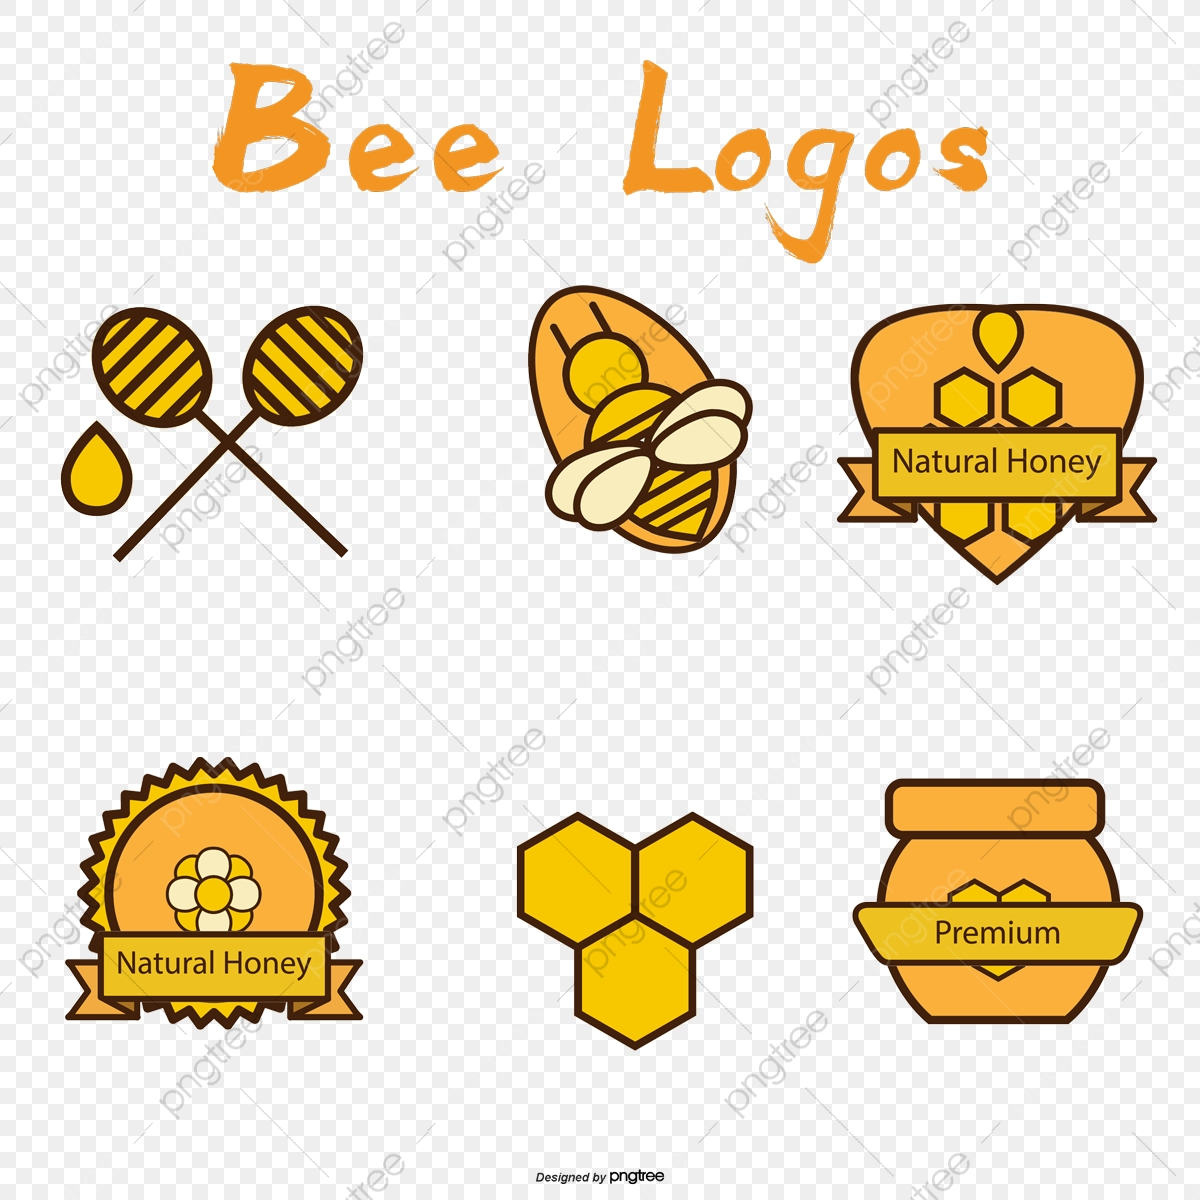 6 Elements In Honey Logo Vector Material, Logo Clipart, Honey, Bee.